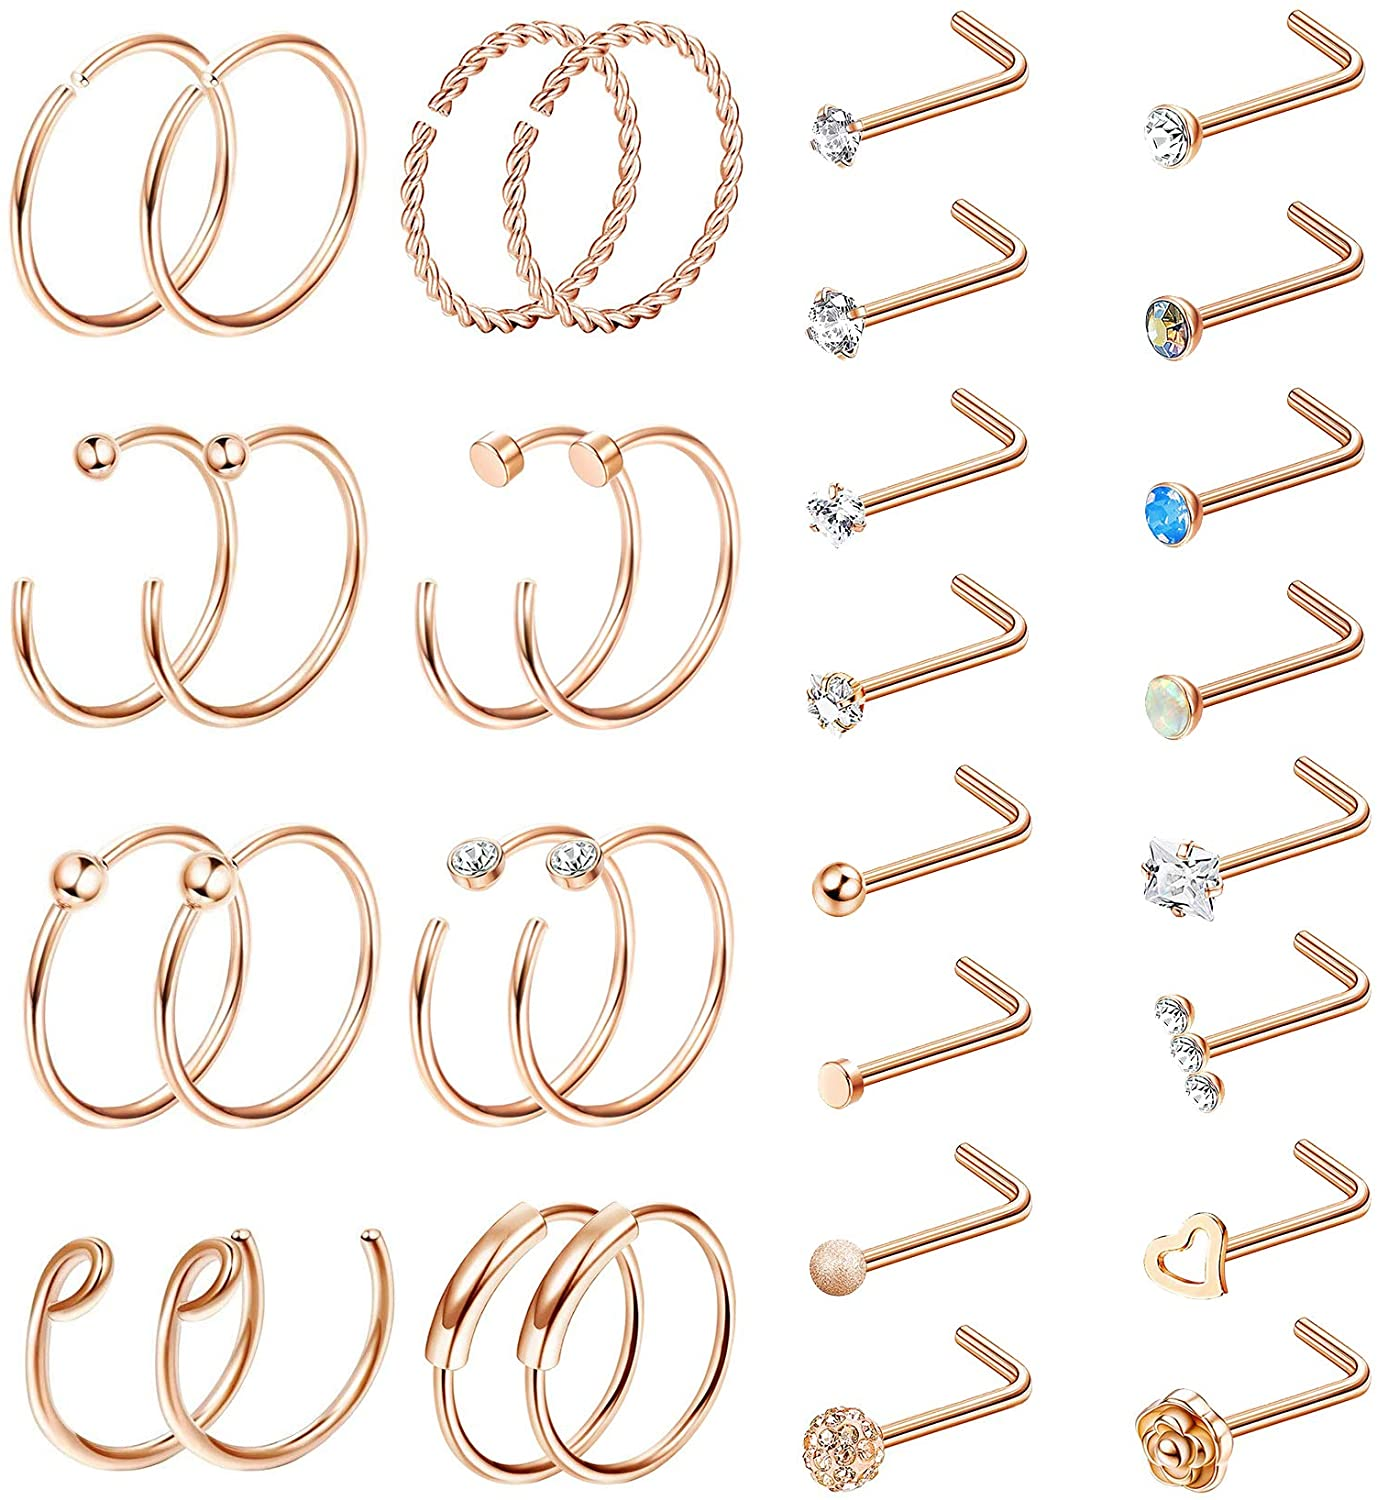 Subiceto 20G Stainless Steel Nose Rings Bone L Screw Shape Nose Studs for Women Men CZ Flower Tragus Cartilage Labret Hoops Body Piercings 32 Pieces